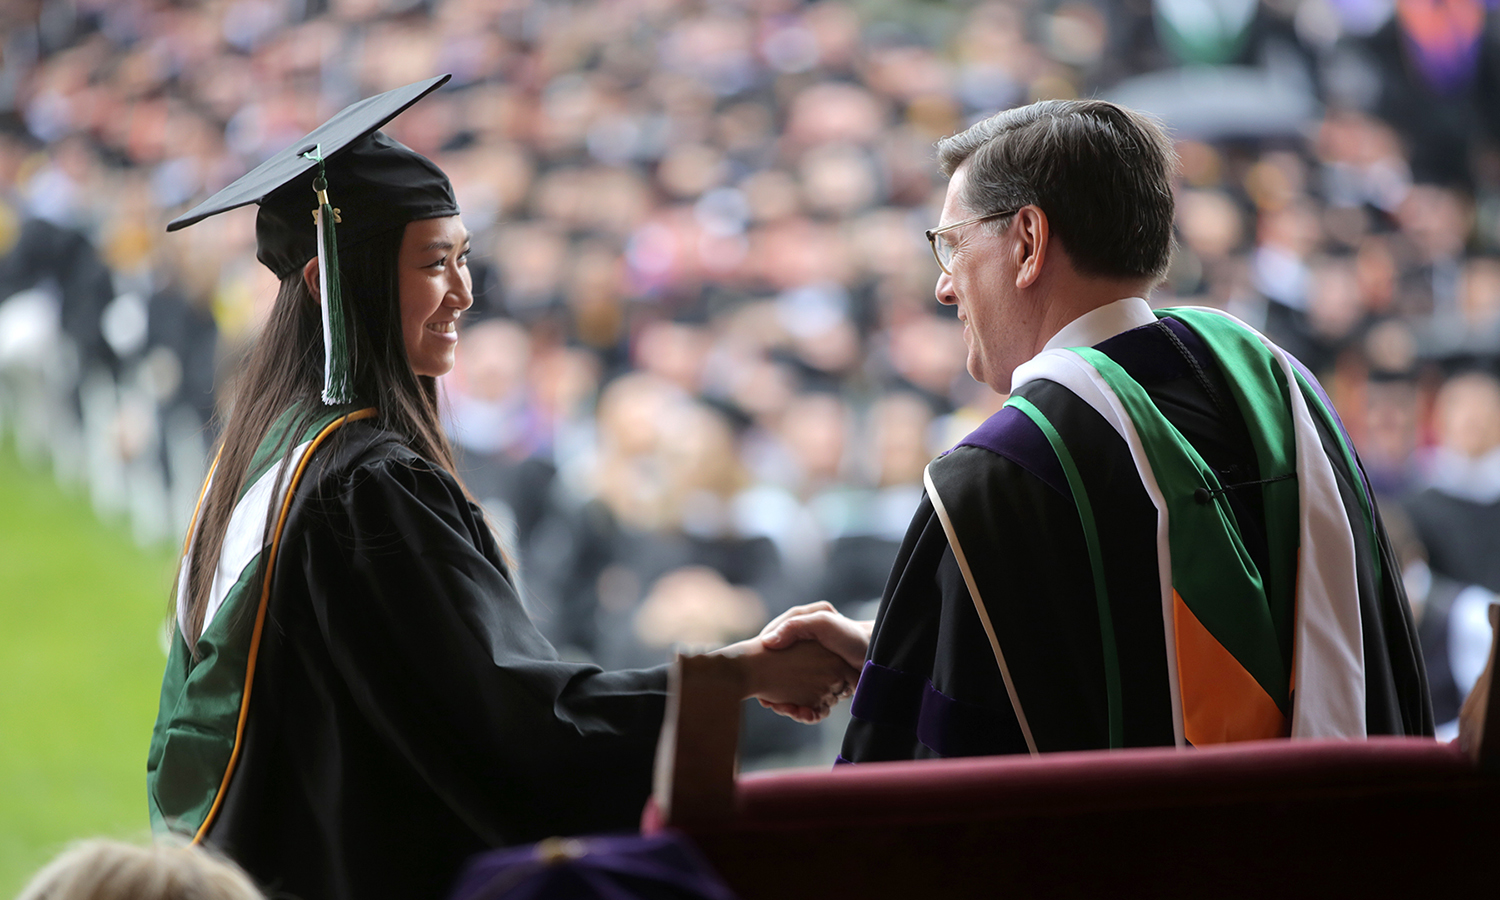 Elizabeth Herbst '17 shakes hands with President Mark D. Gearan during Commencement.